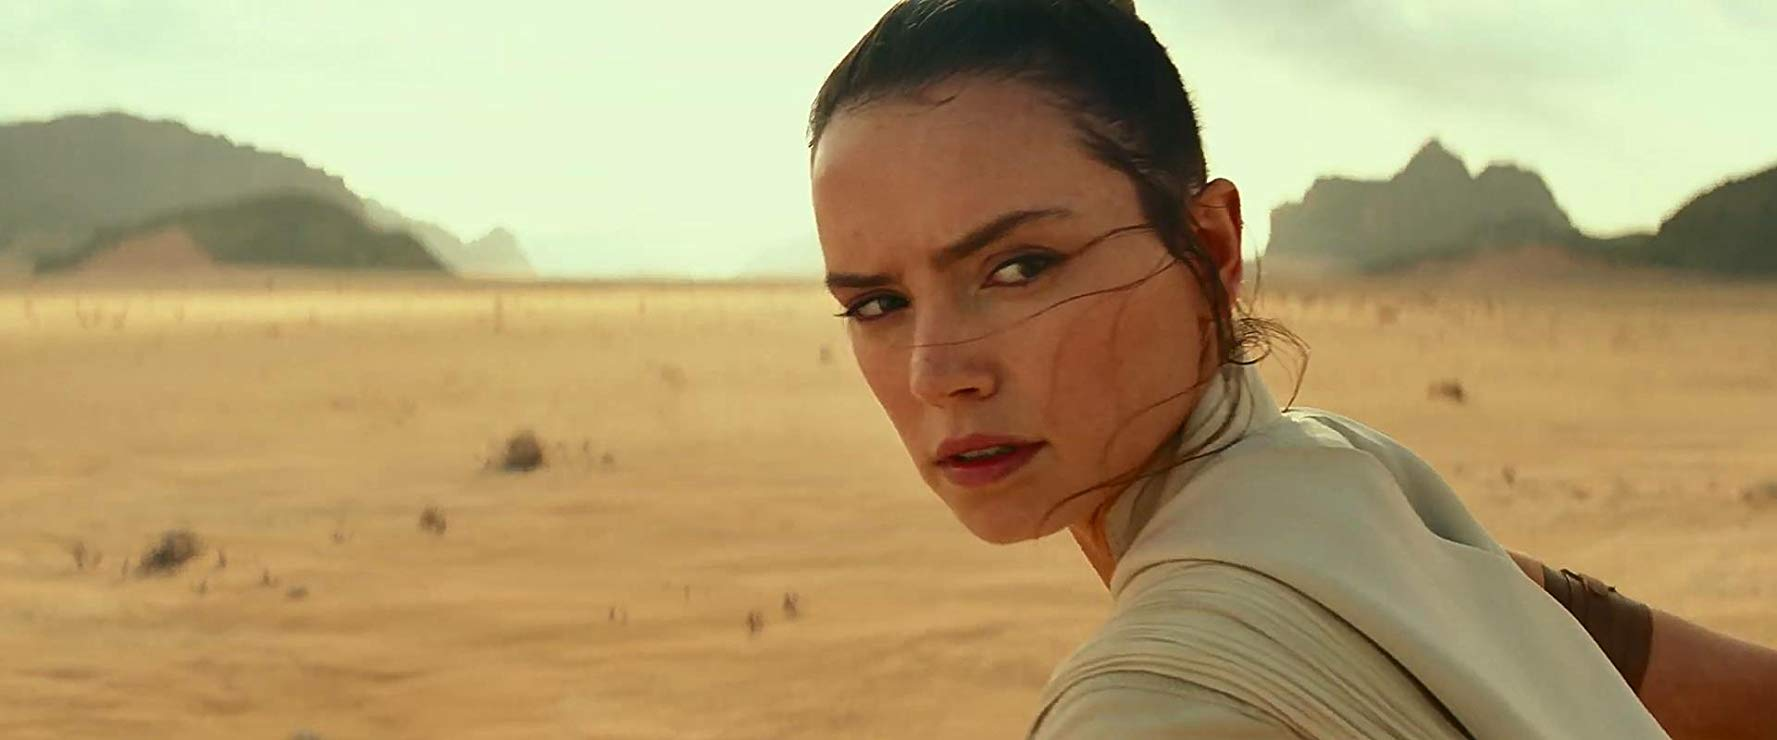 Rey on the desert planet Pasaana